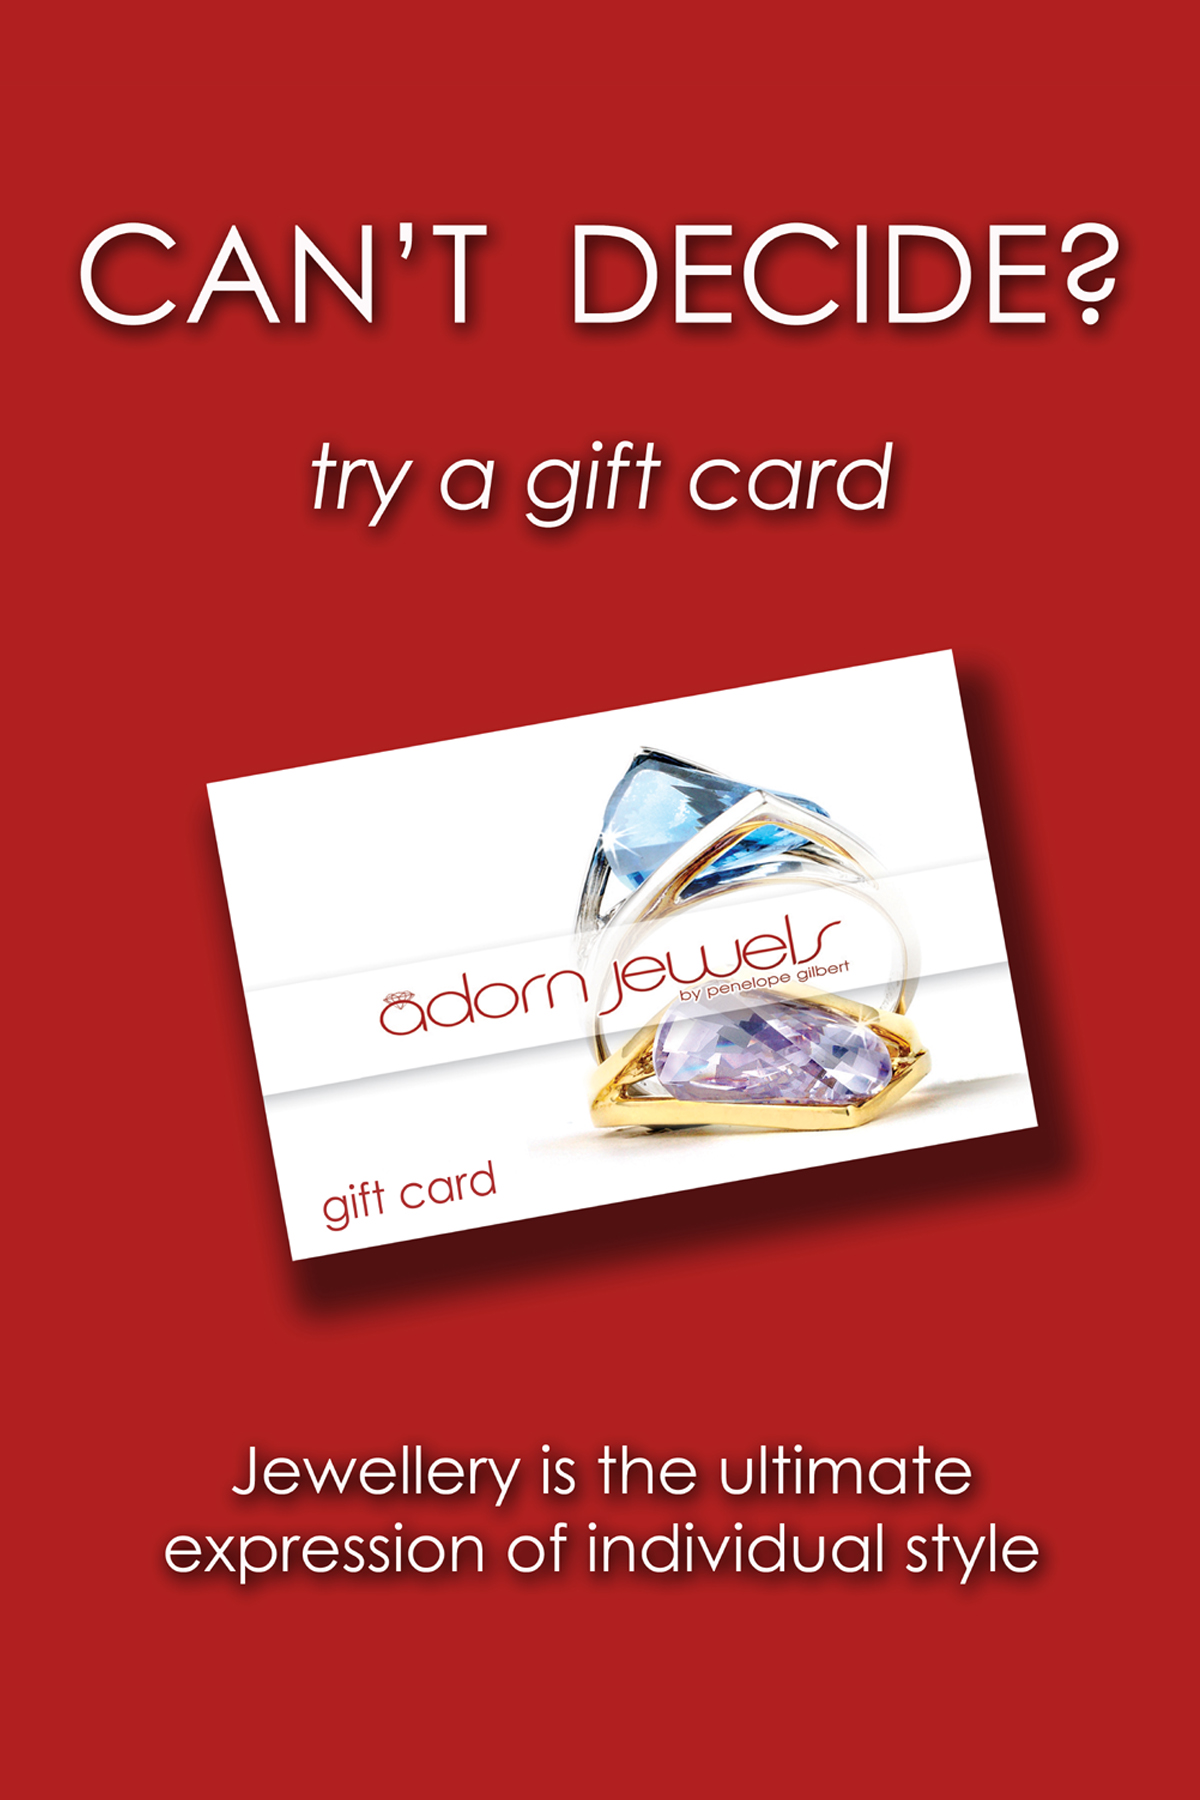 Adorn Jewels Gift Card, Remodelling Gift ideas, Adorn Jewels, Adelaide Jewellery , Adelaide Jewellery, Custome manufacture Jewellery